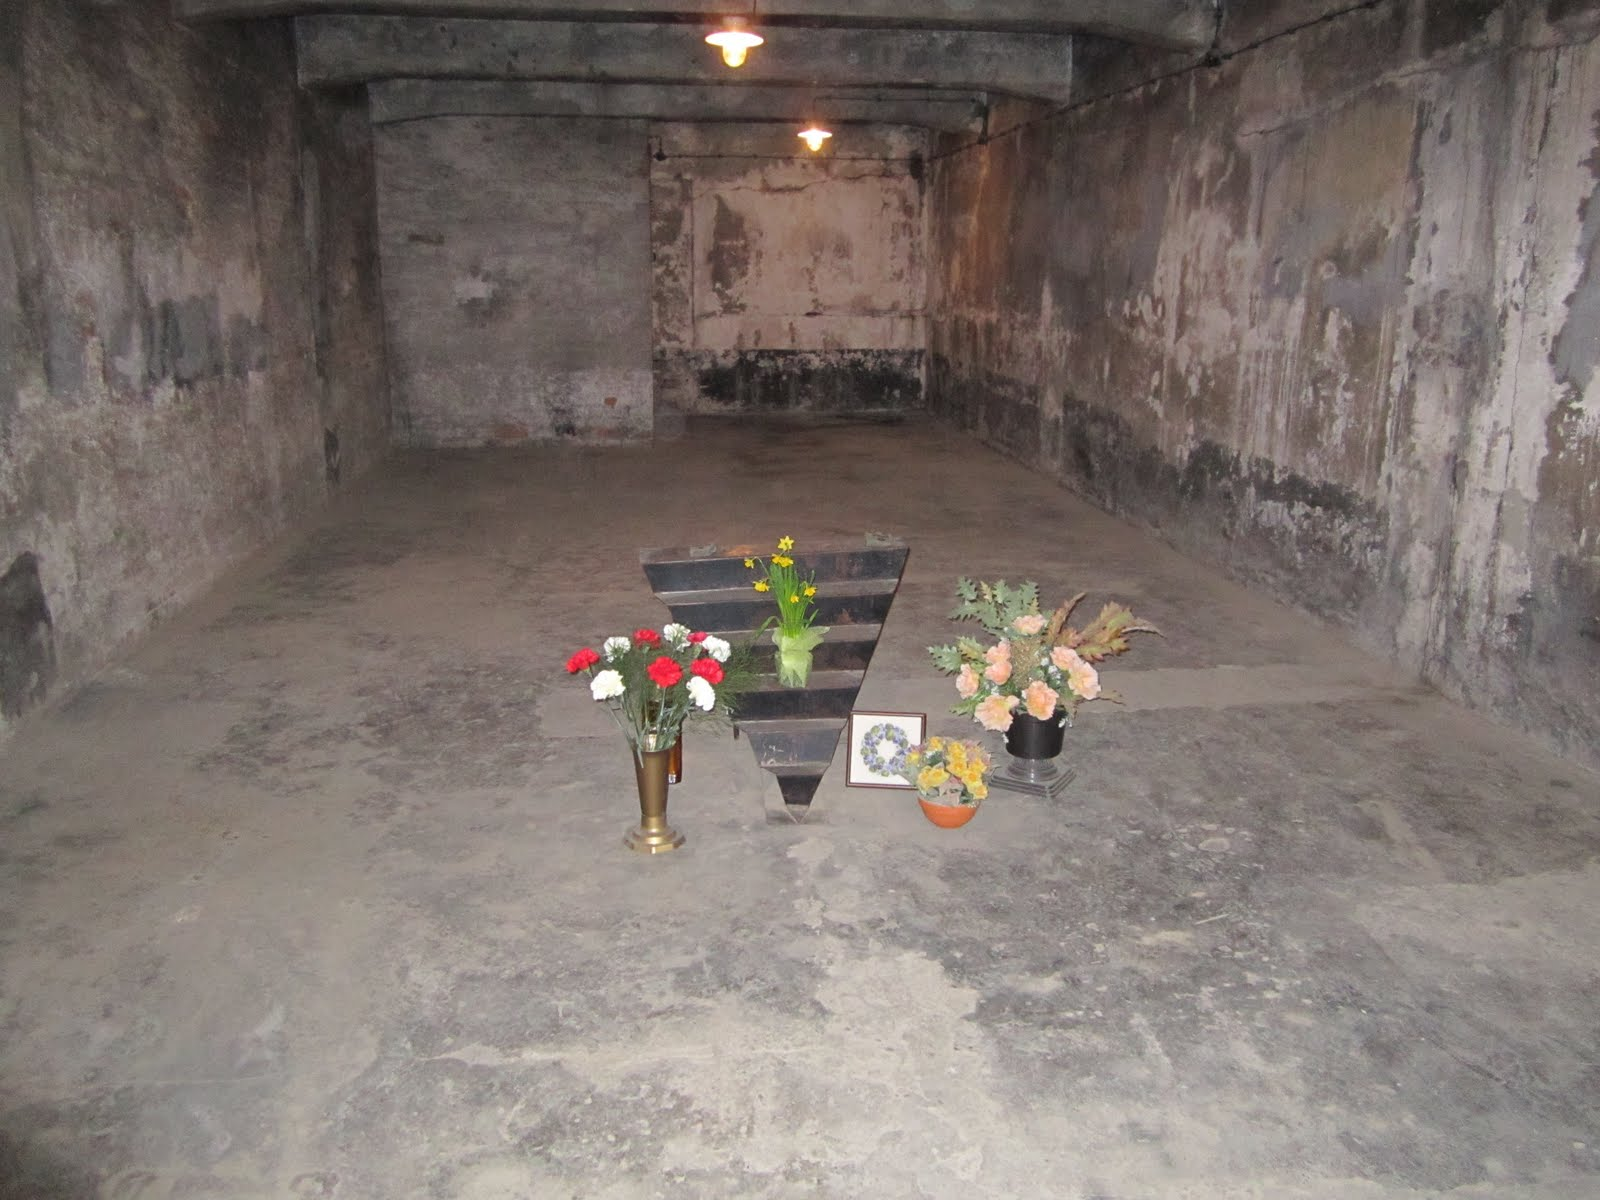 Concentration camps gas chambers images amp pictures becuo